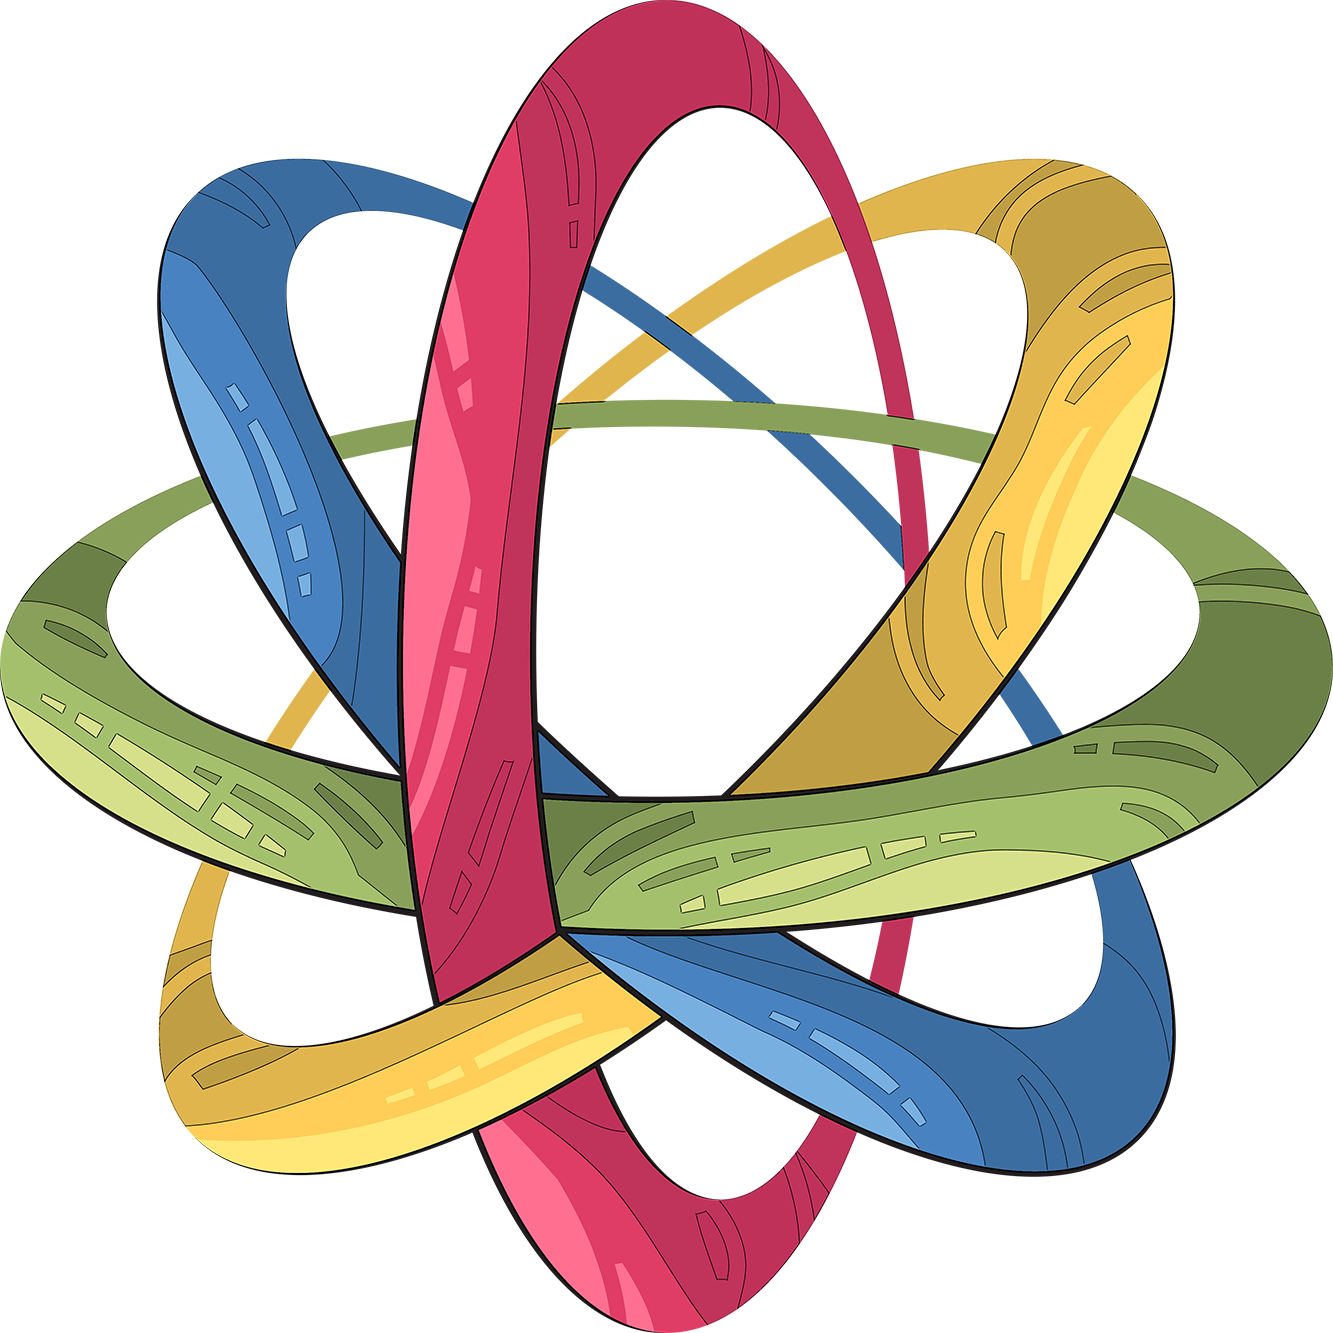 Club clipart science and math ClipartAndScrap fans clipart Free science